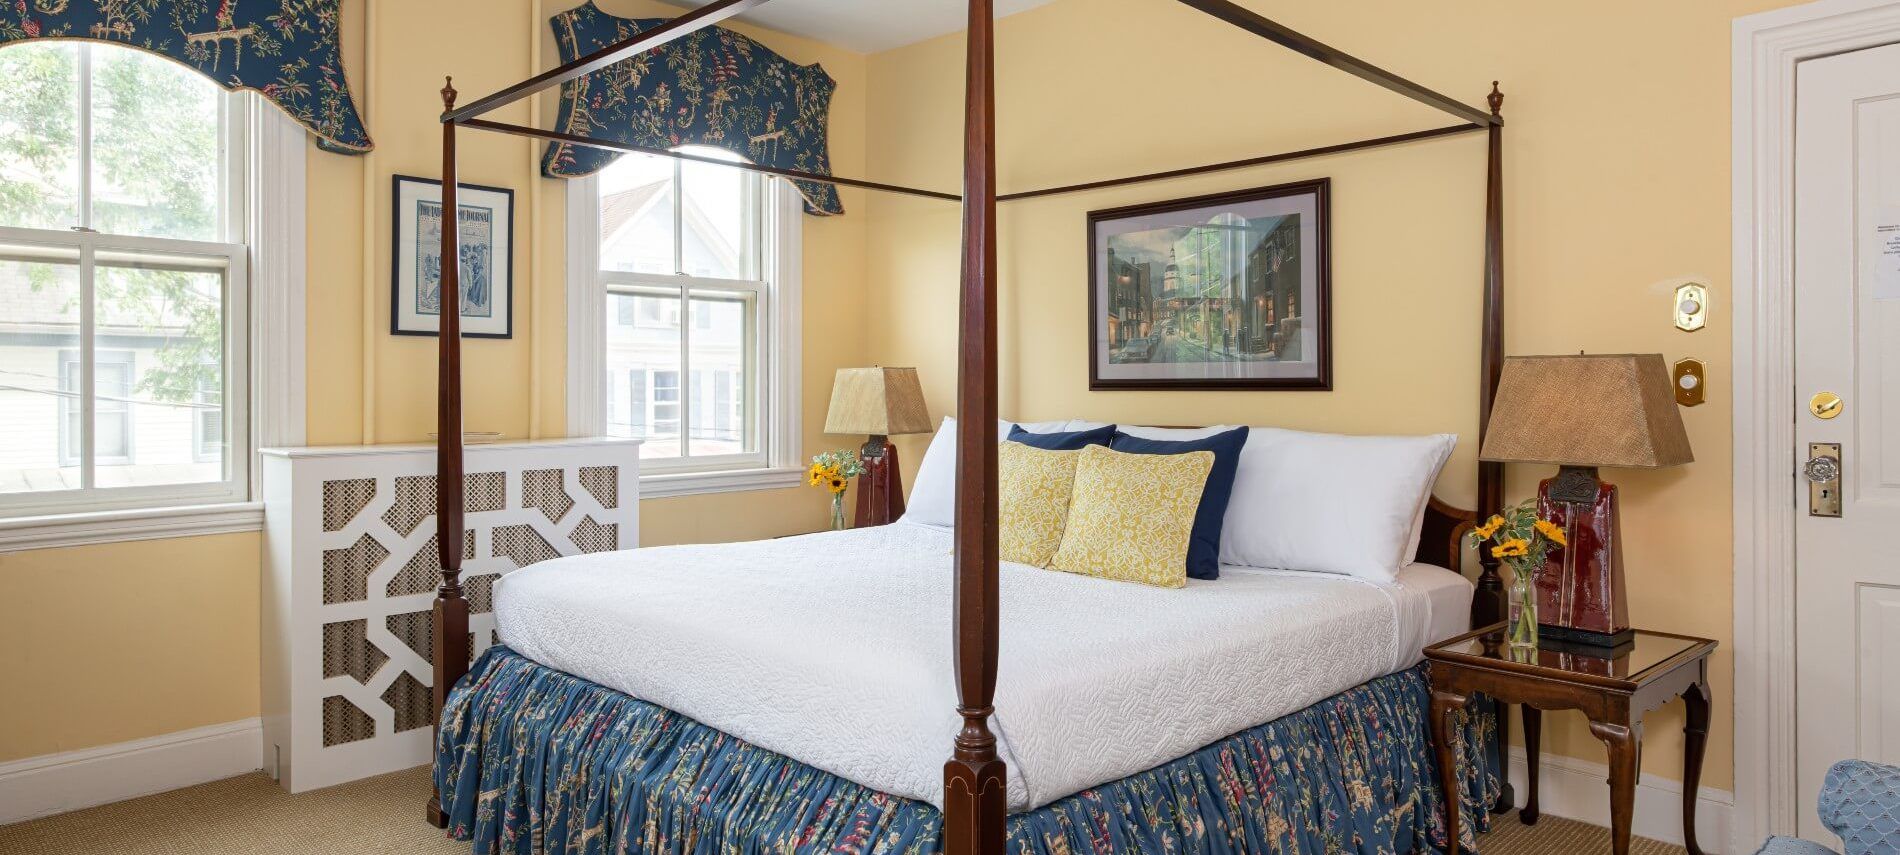 Large room with cream clored walls and a four poster bed with a blue coverlet